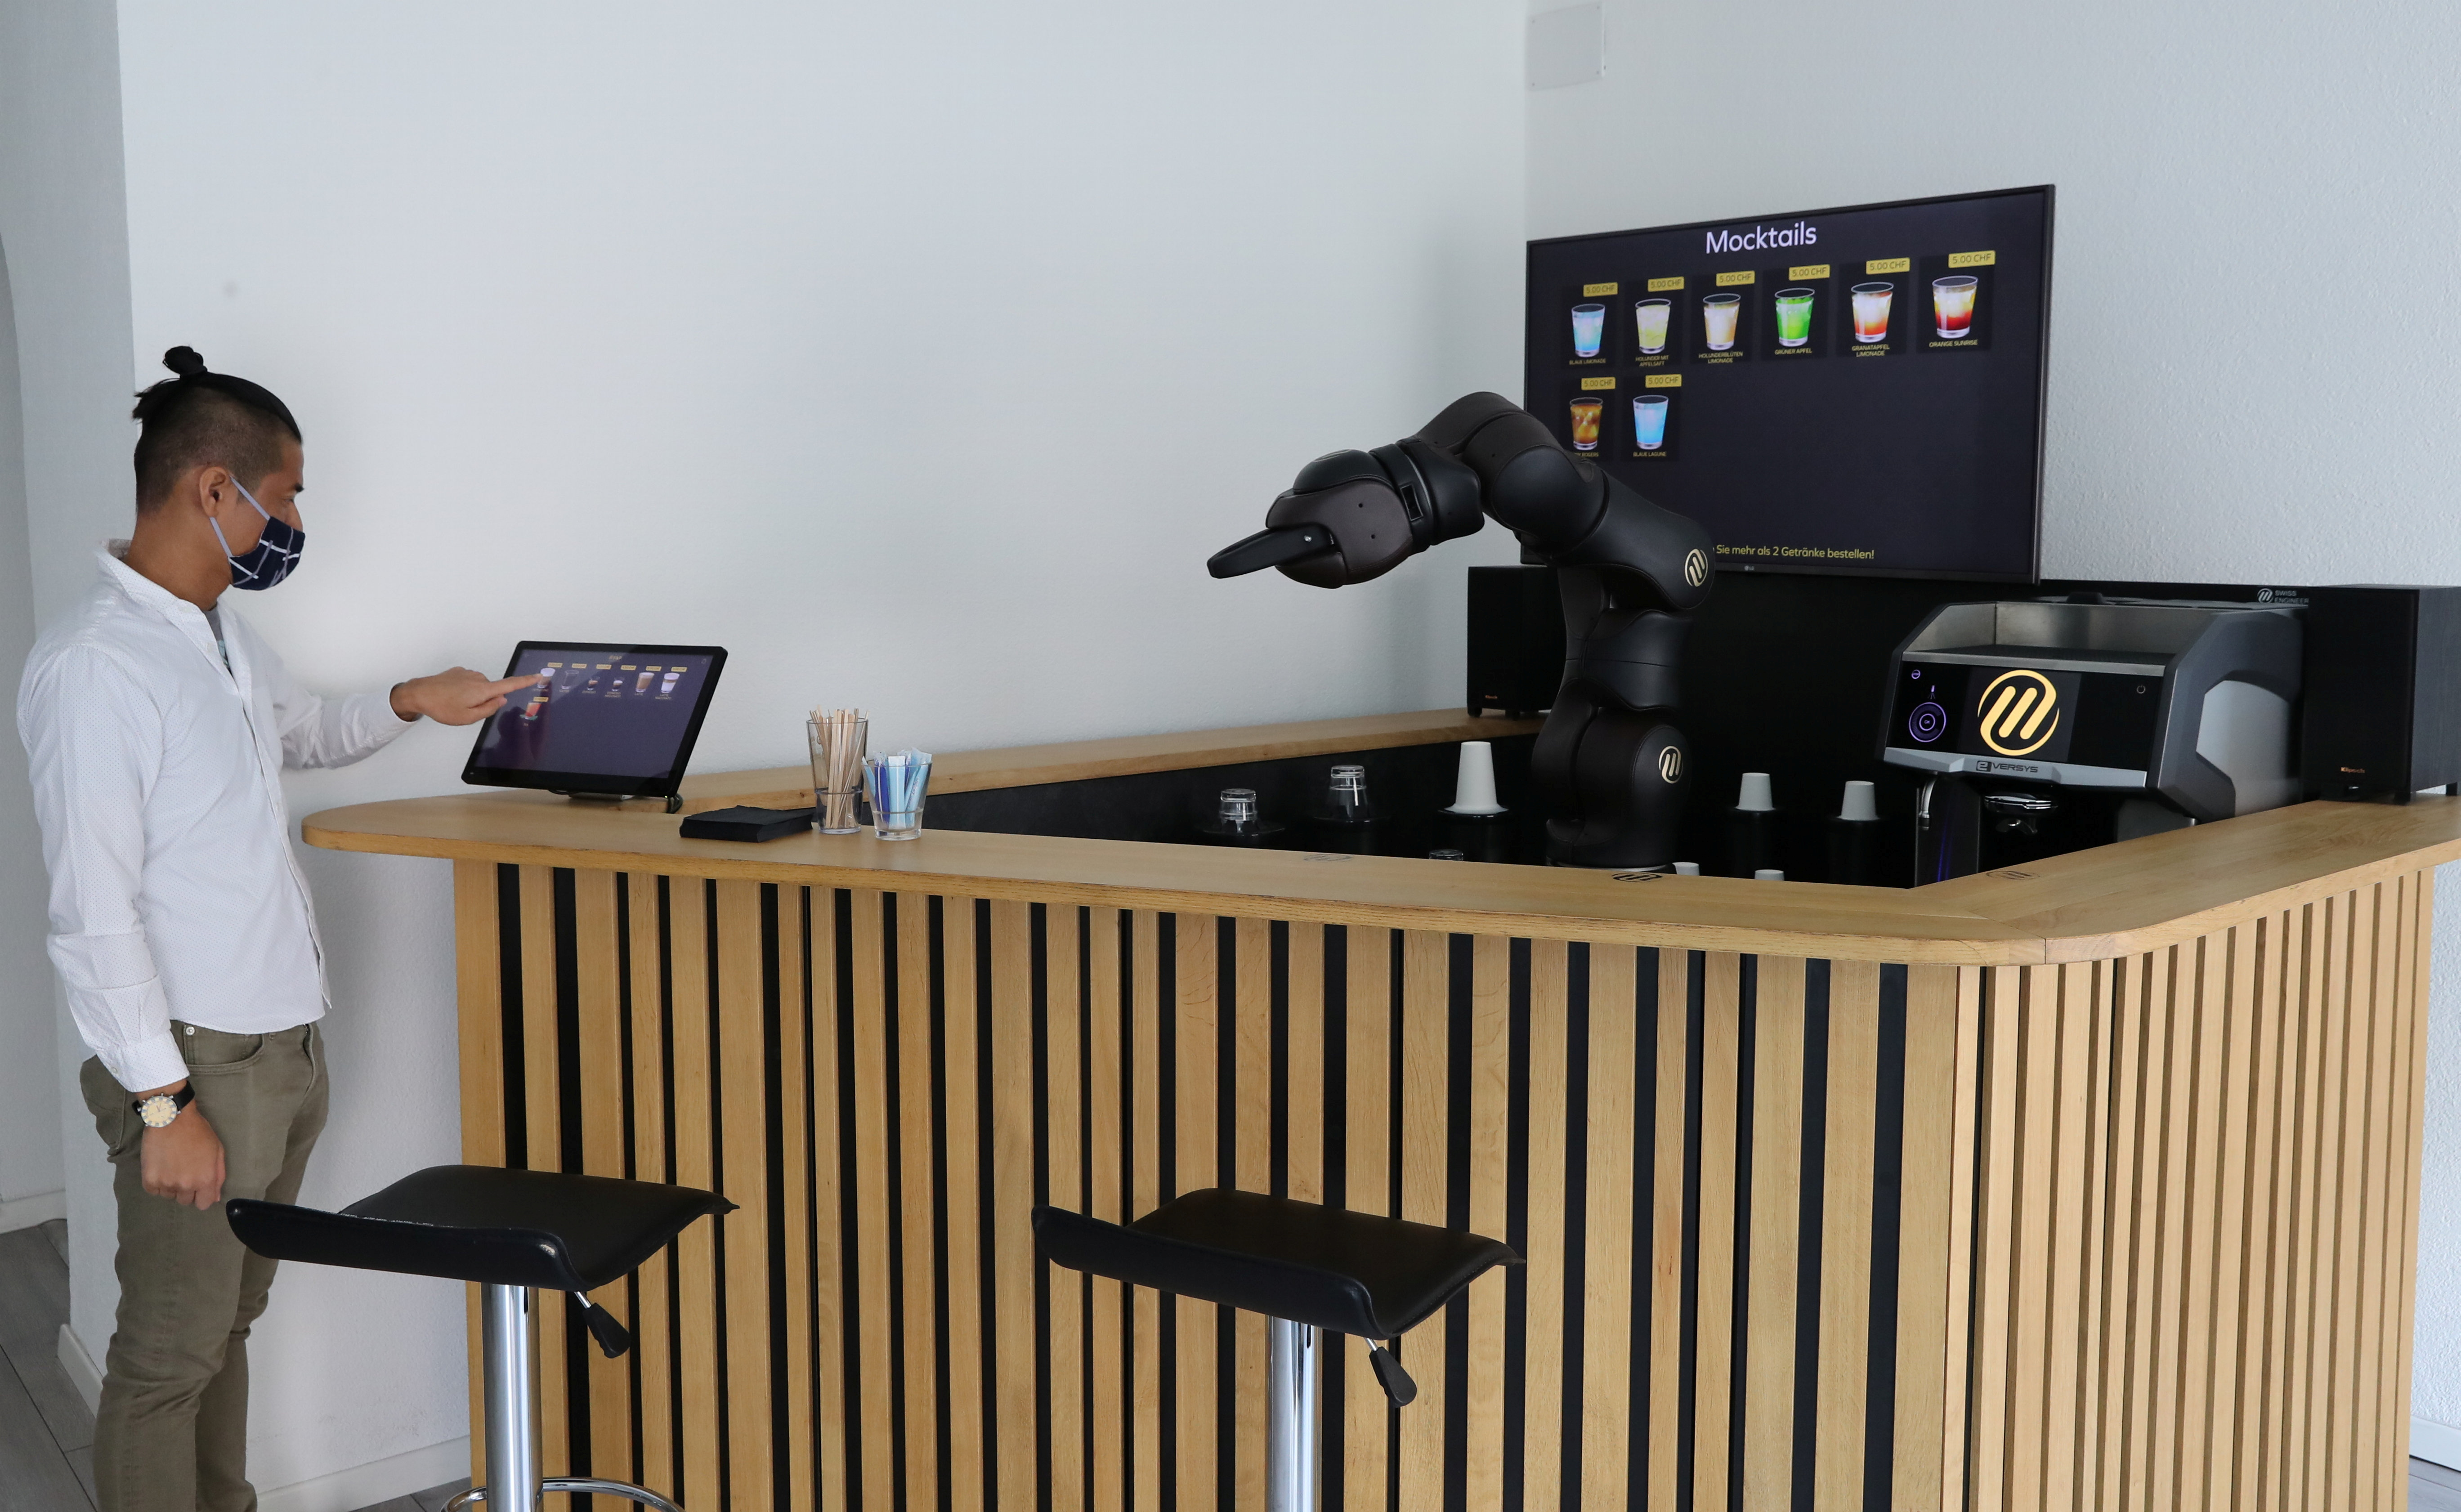 An employee taps a display to order a coffee at the Barney Barista Bar of the Swiss F&P Robotics company in Zurich, Switzerland, April 16, 2021. Picture taken April 16, 2021. REUTERS/Arnd Wiegmann